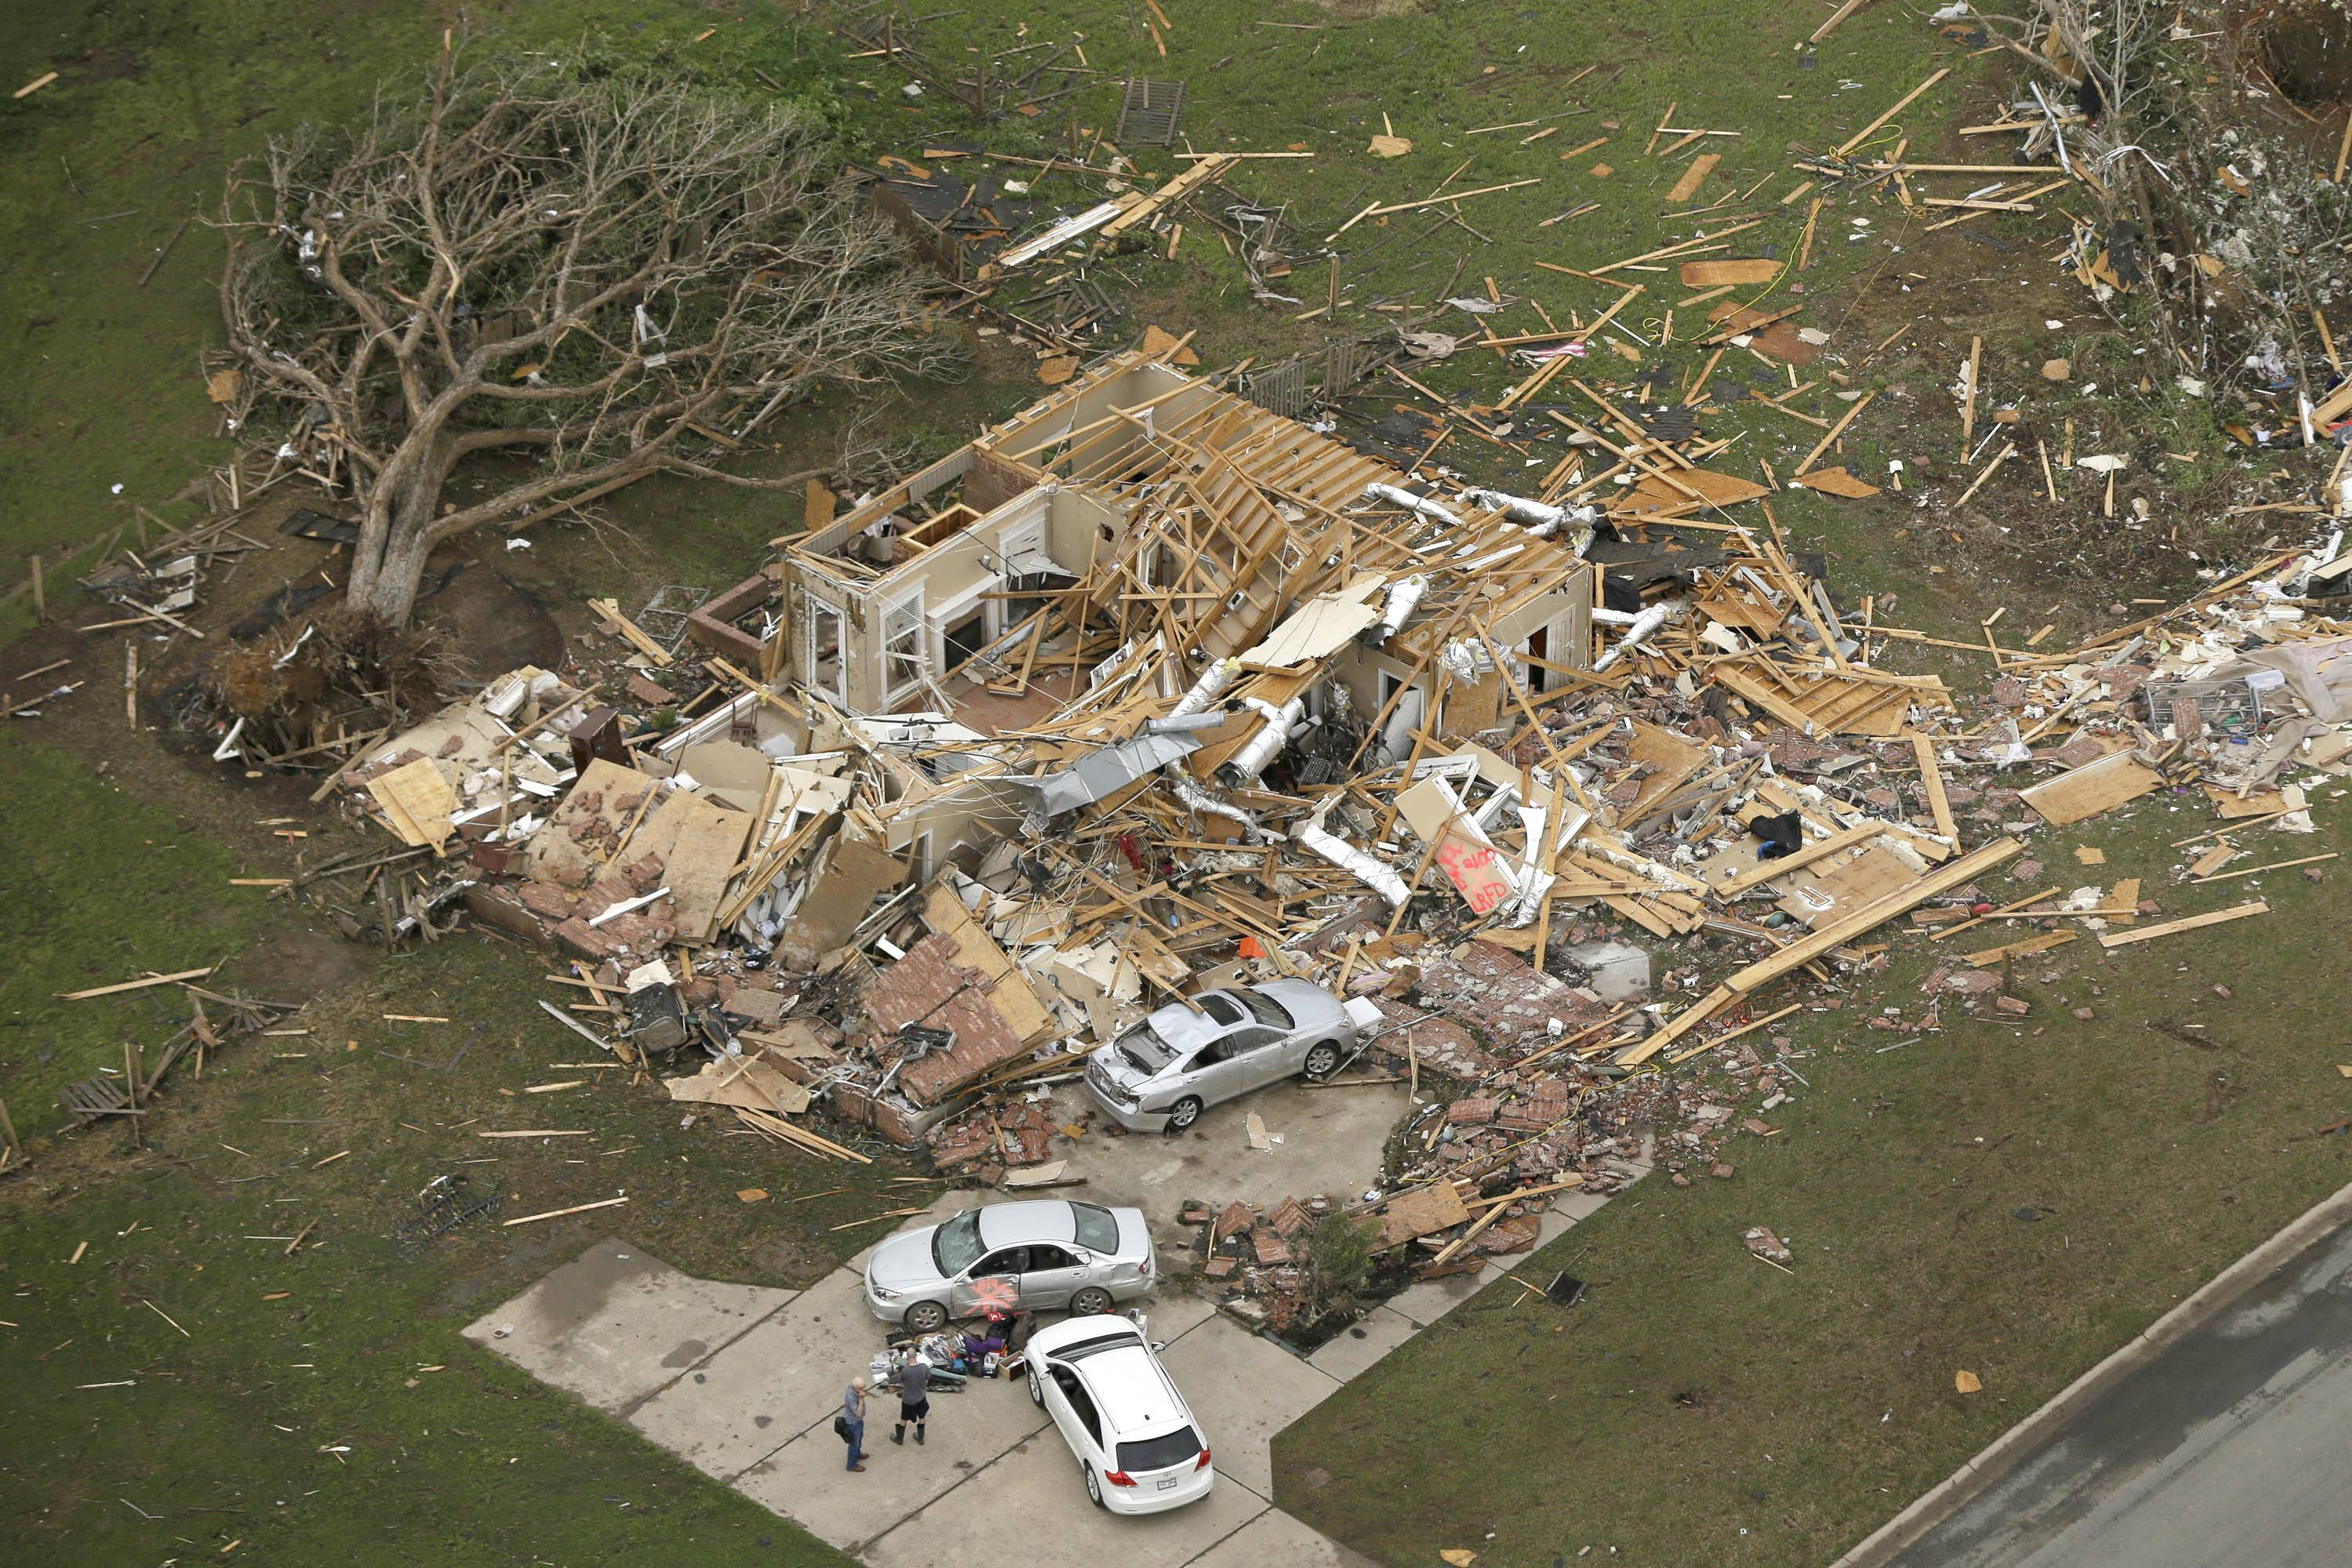 Images: Weekend storms kill 17 in Arkansas and Oklahoma